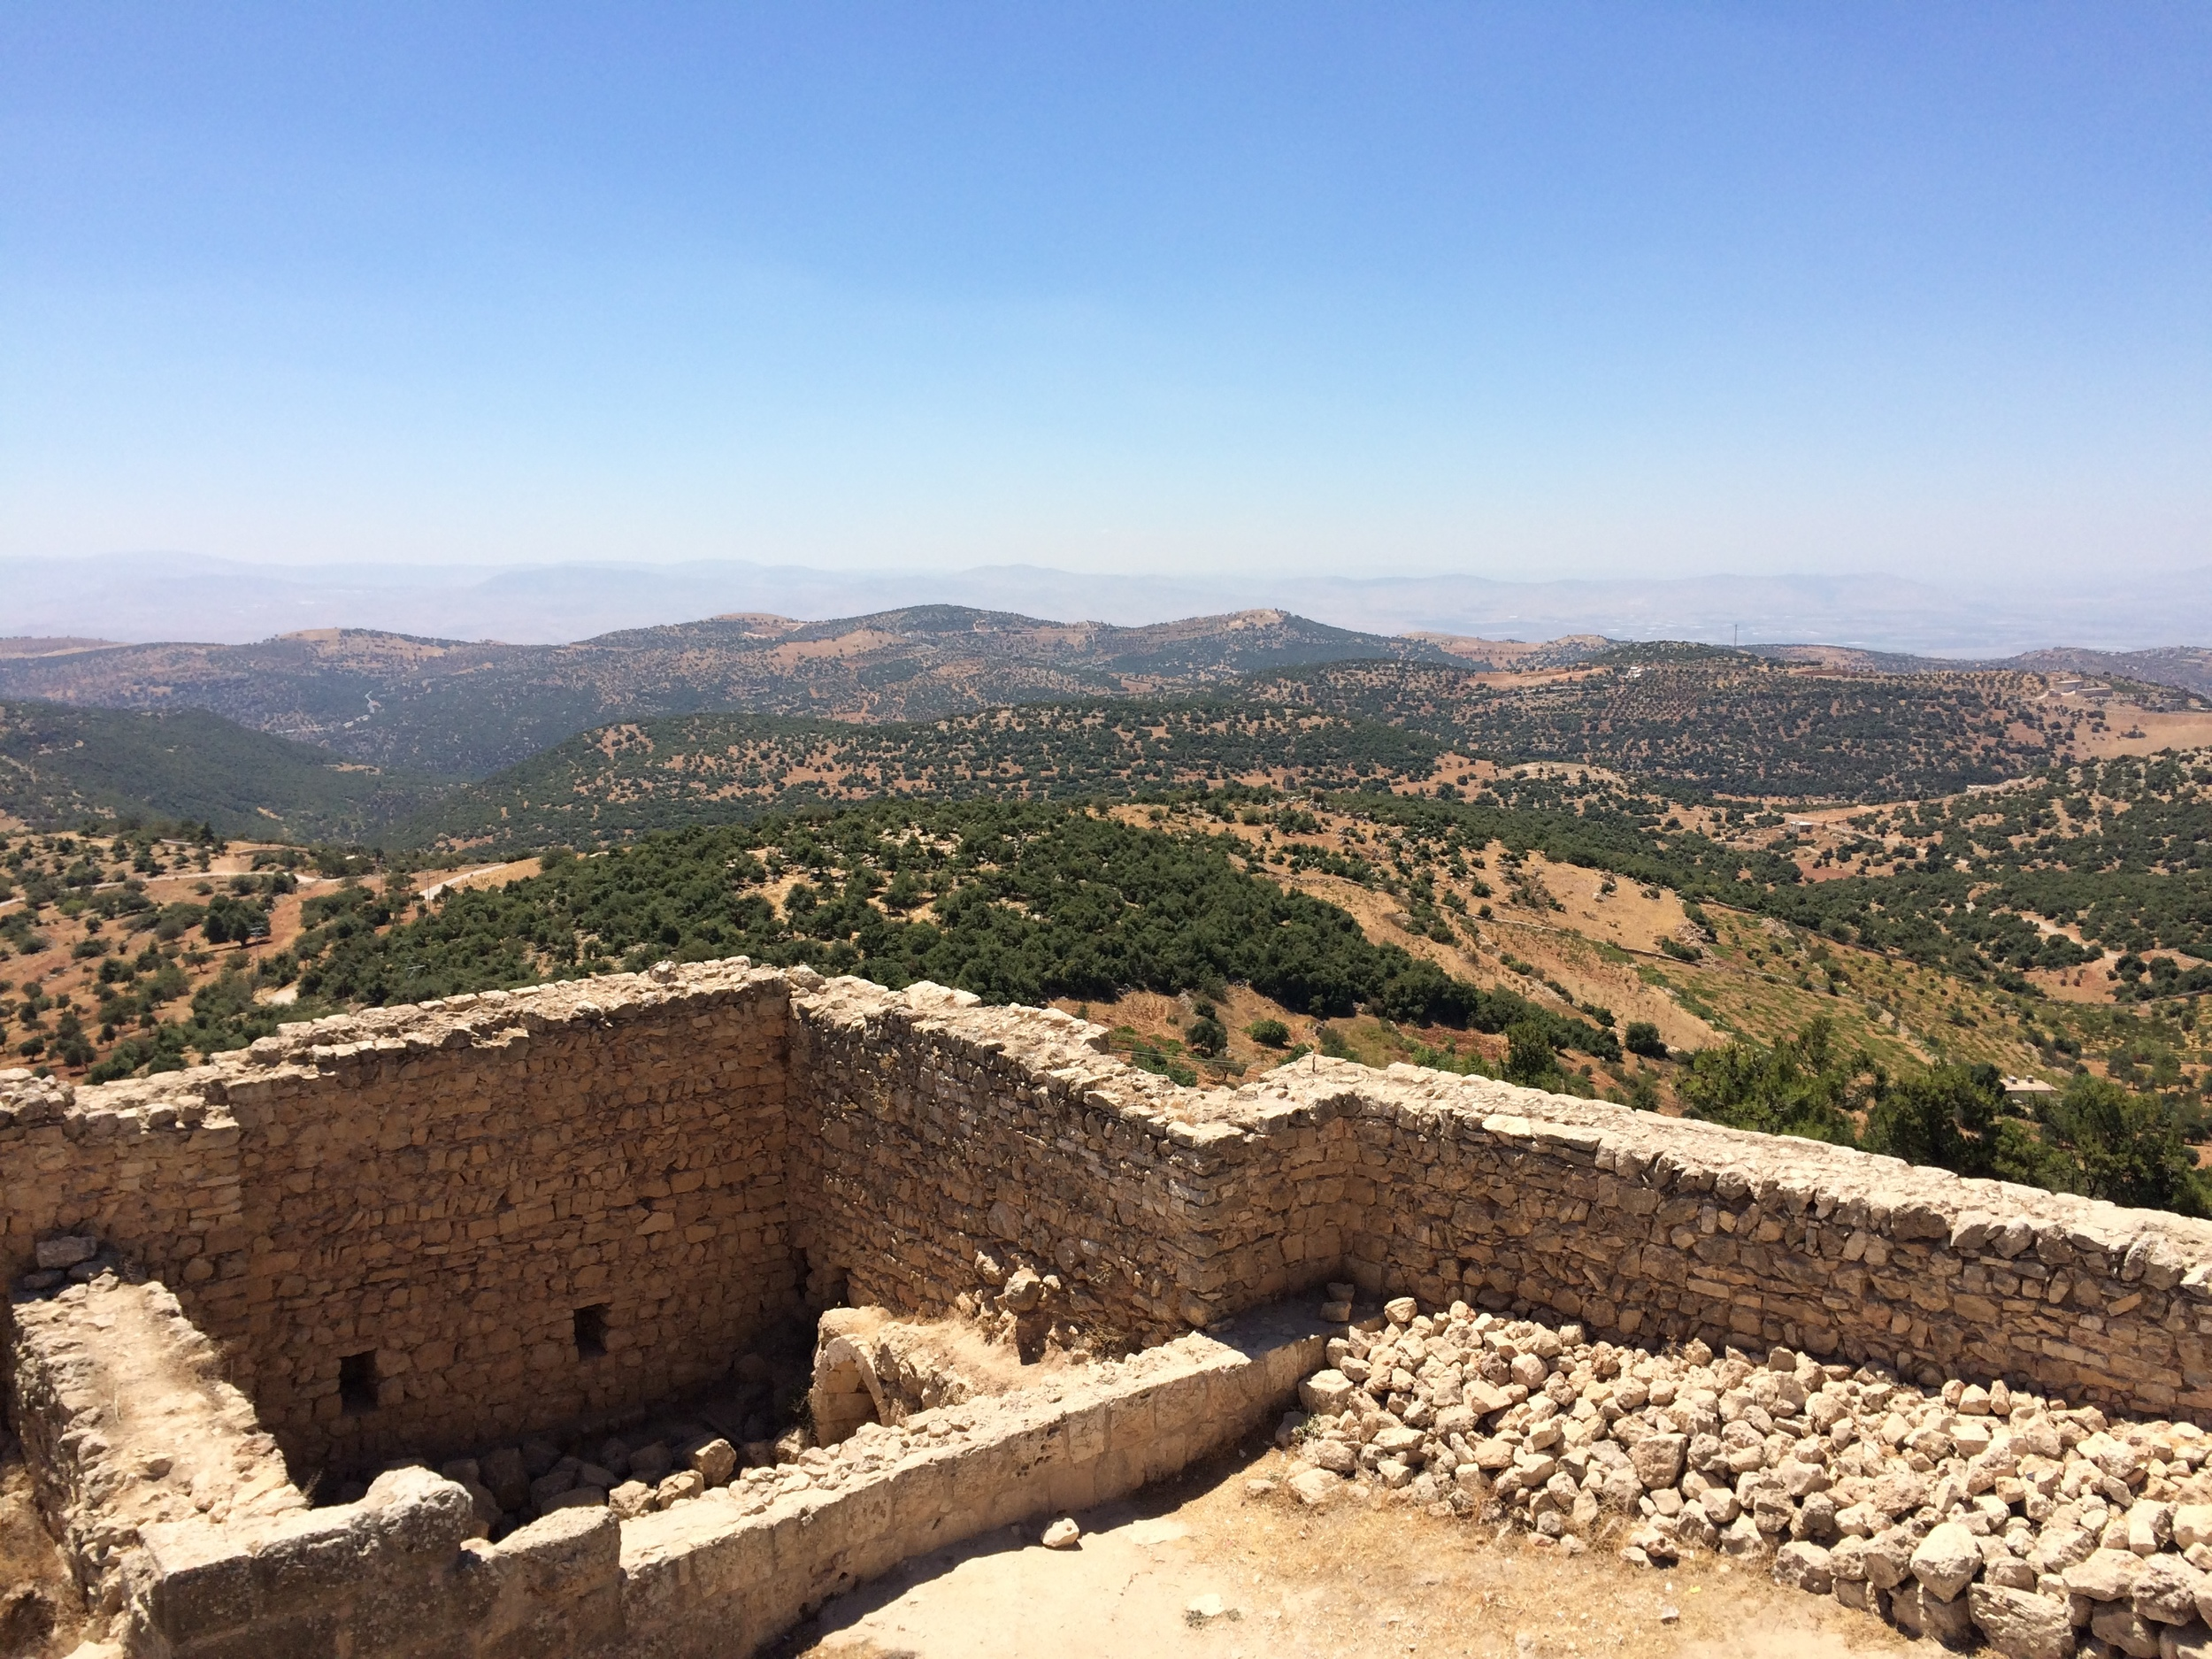 From the top of the castle you can see the borders of Syria and Israel